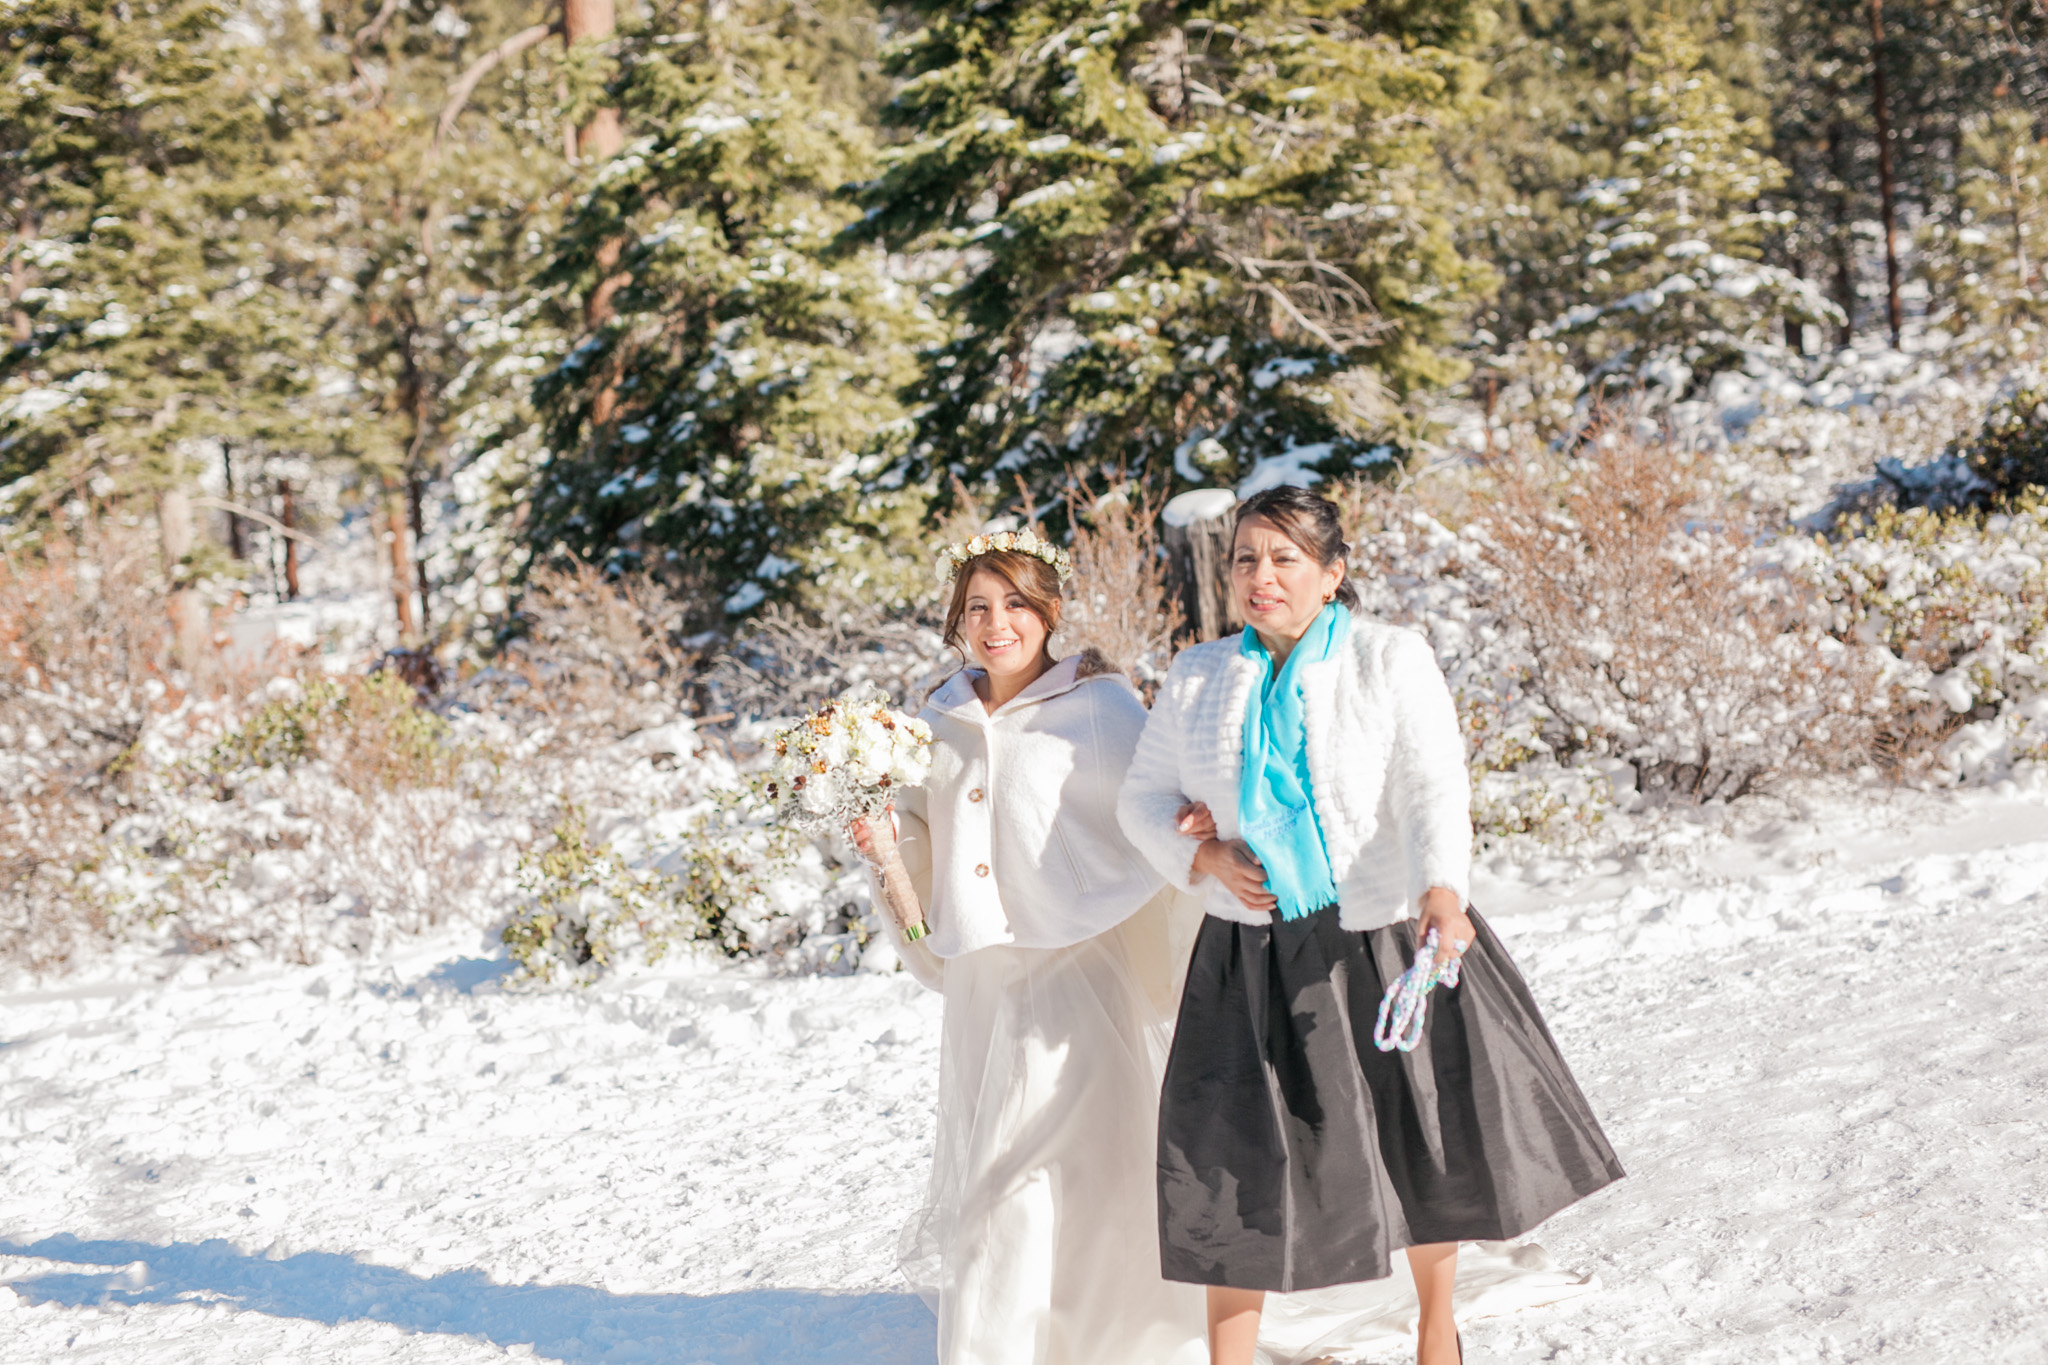 Lake Tahoe Wedding Photographer - Winter Wedding-66